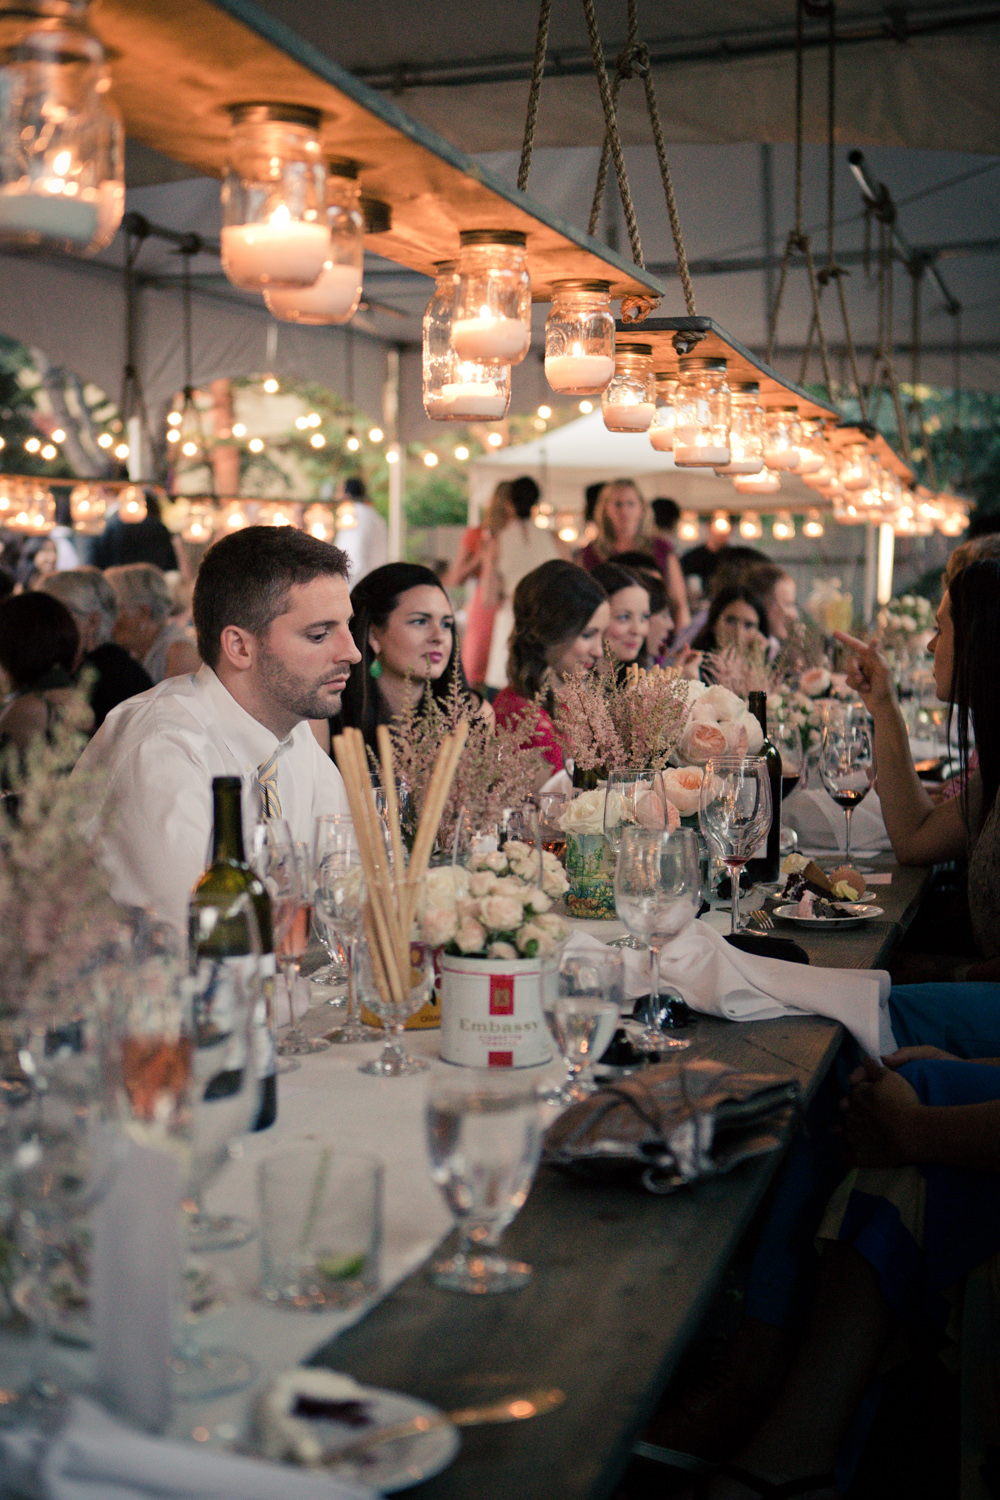 These custom made lantern chandeliers set the tone for this family-style tented wedding.